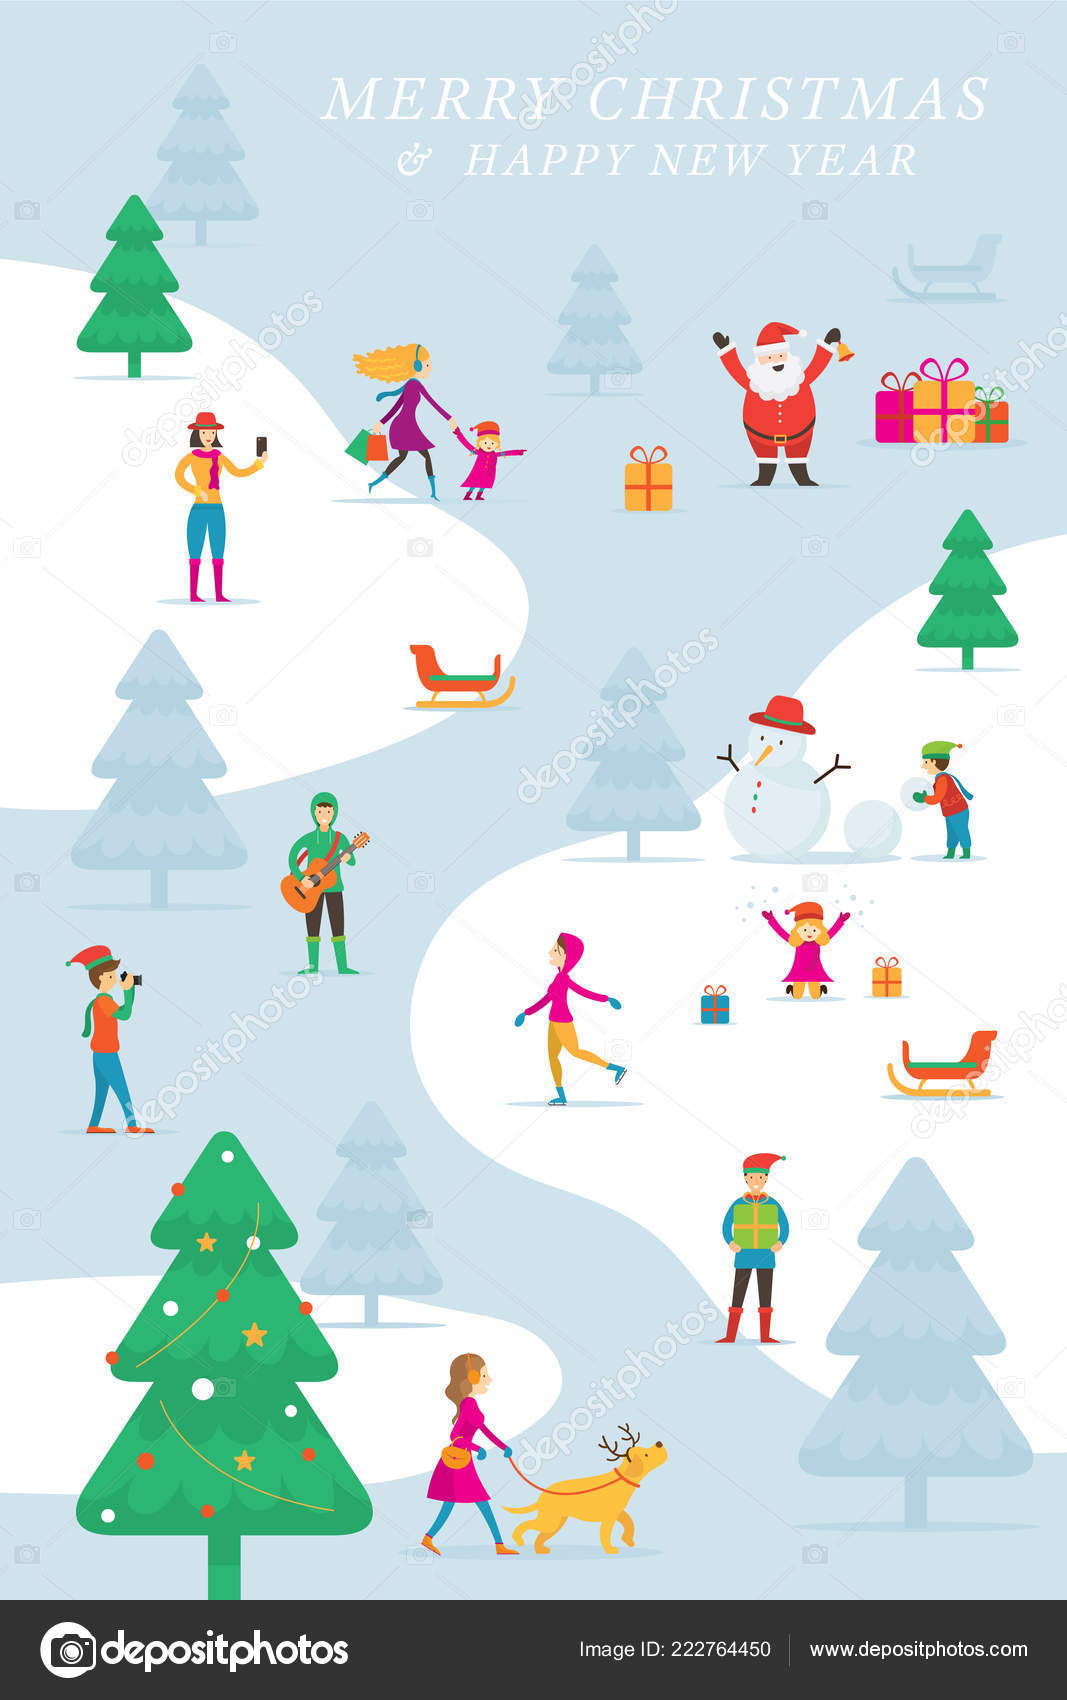 christmas people action activity outdoor winter background new year celebration stock vector